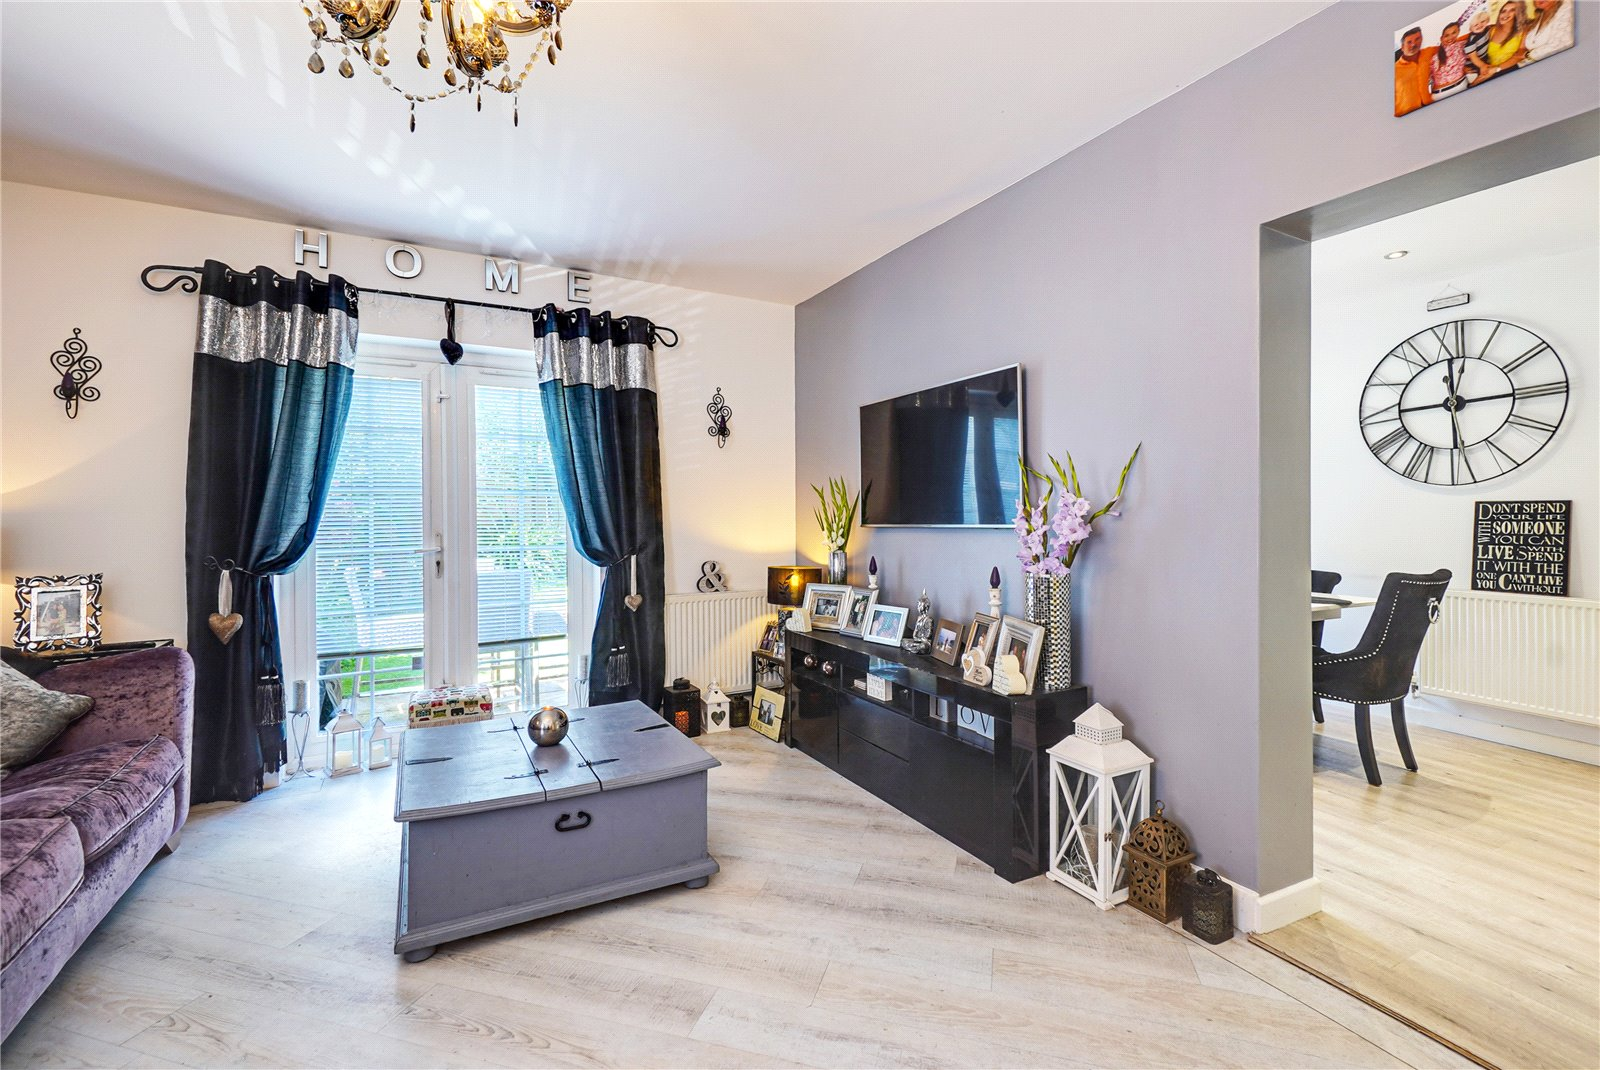 3 bed house for sale in Coriander Drive, Maidstone  - Property Image 5